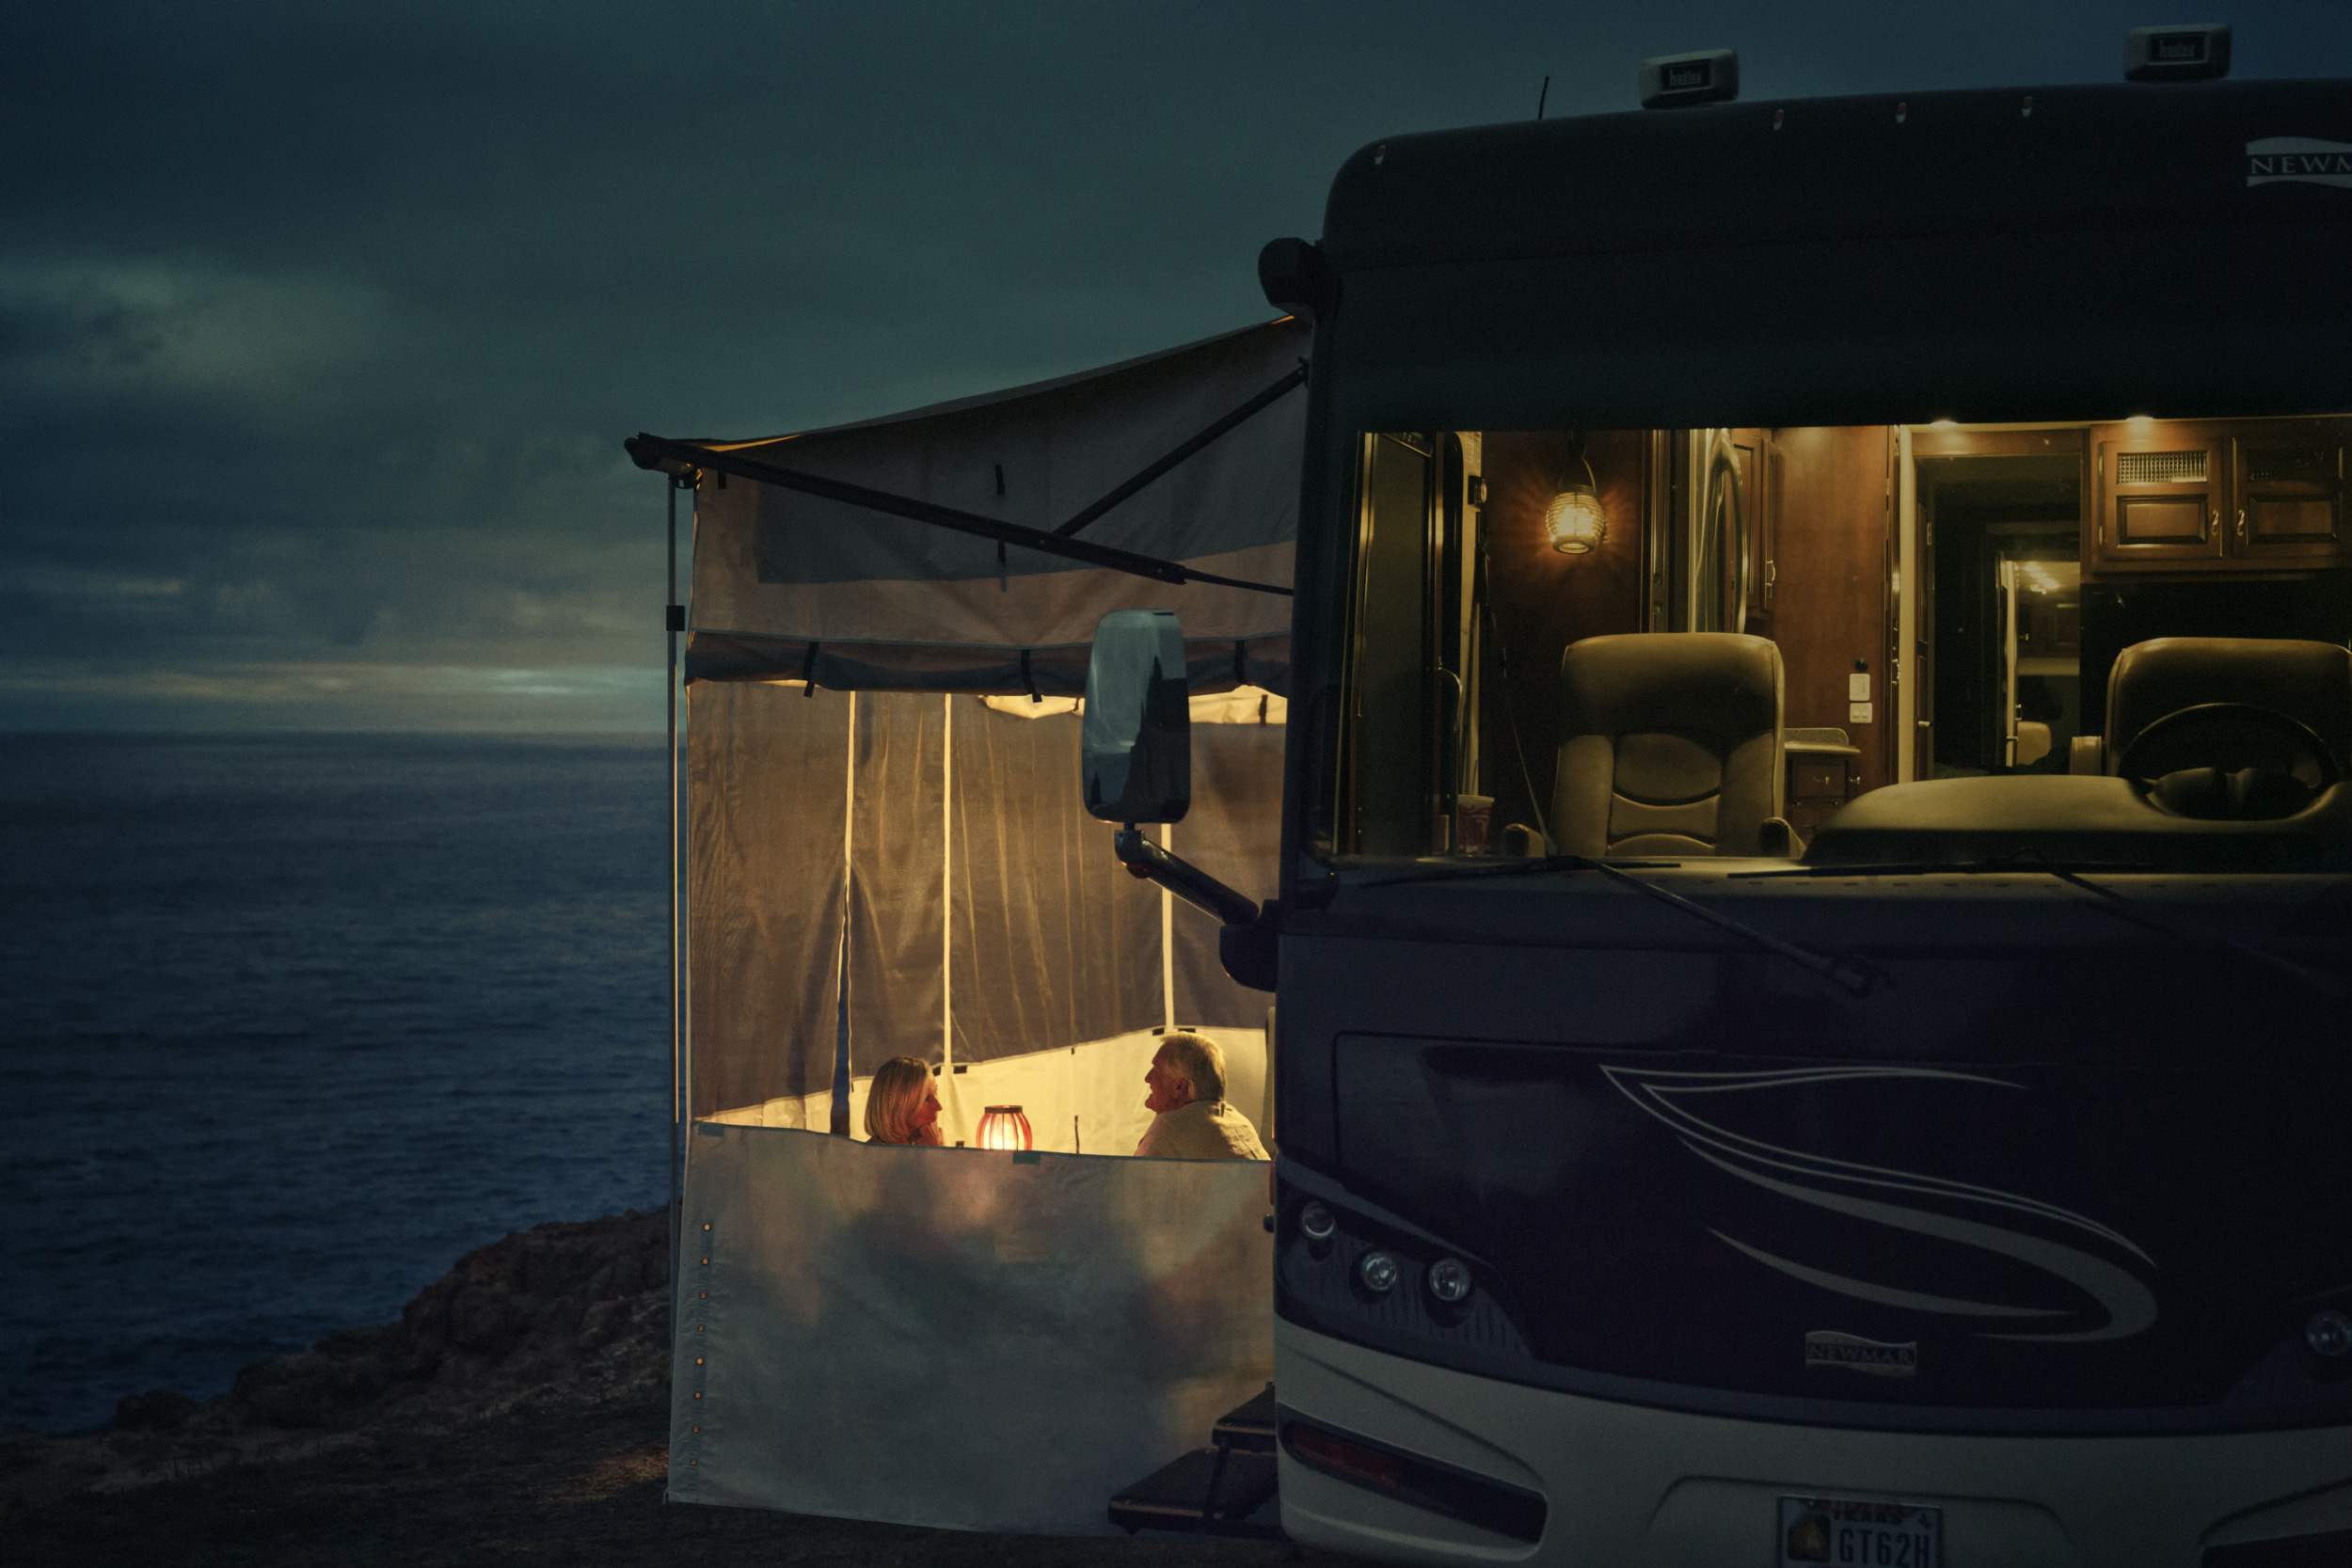 Dometic rv motorhome tent power lights Day6 1184, lights, rv, motorhome, tent, warmth, warm, comfort, picnic, travel, nature, sea, seaside